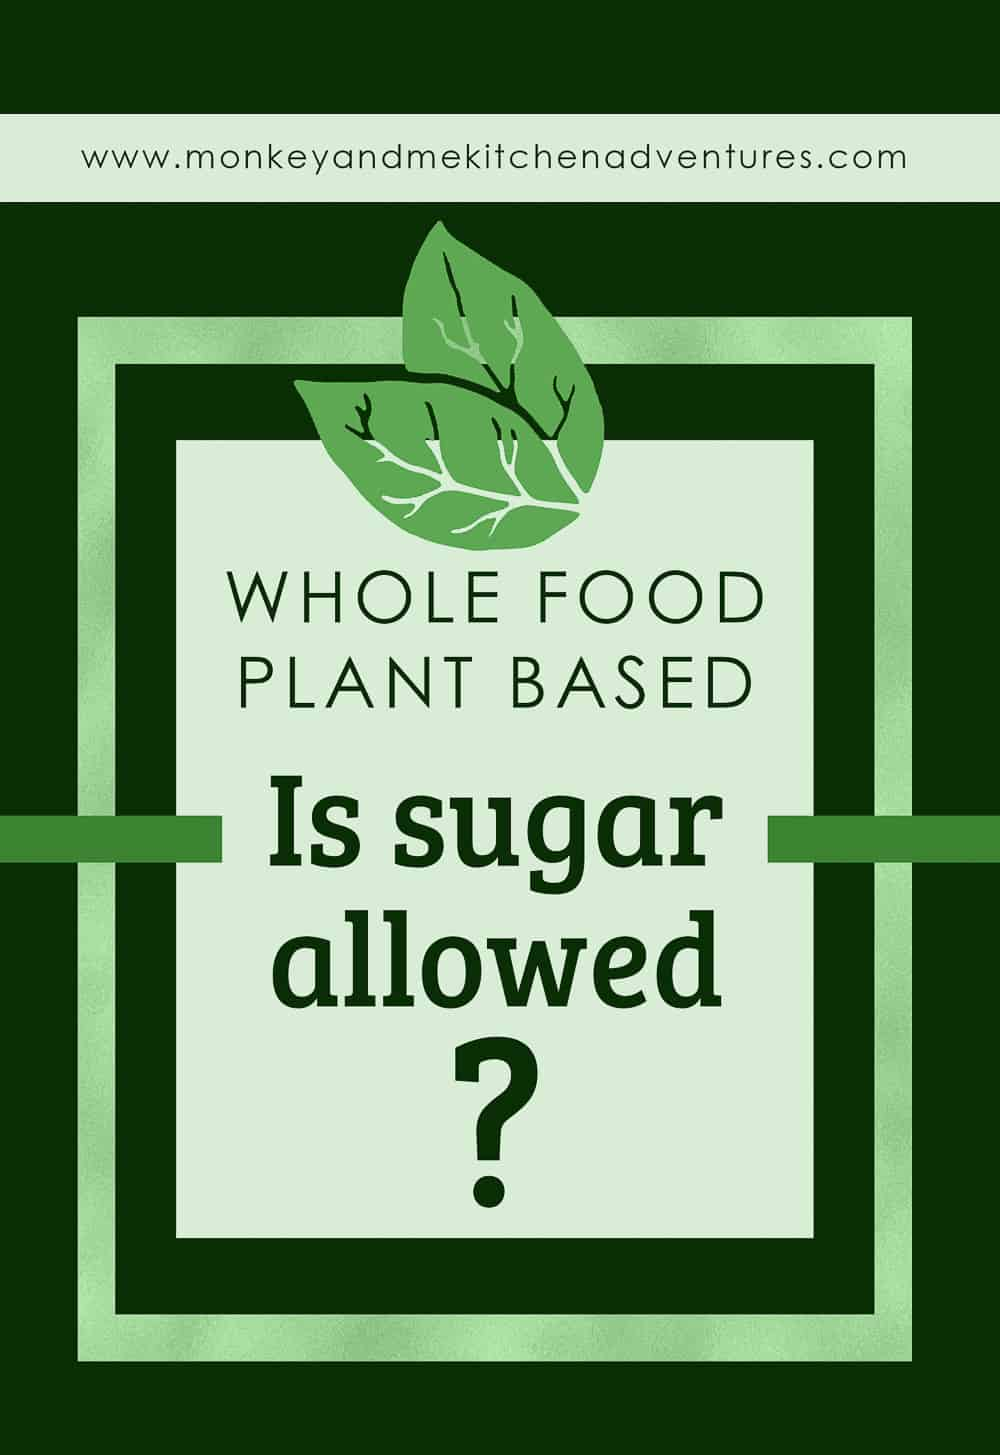 is sugar allowed, whole food plant based, resources